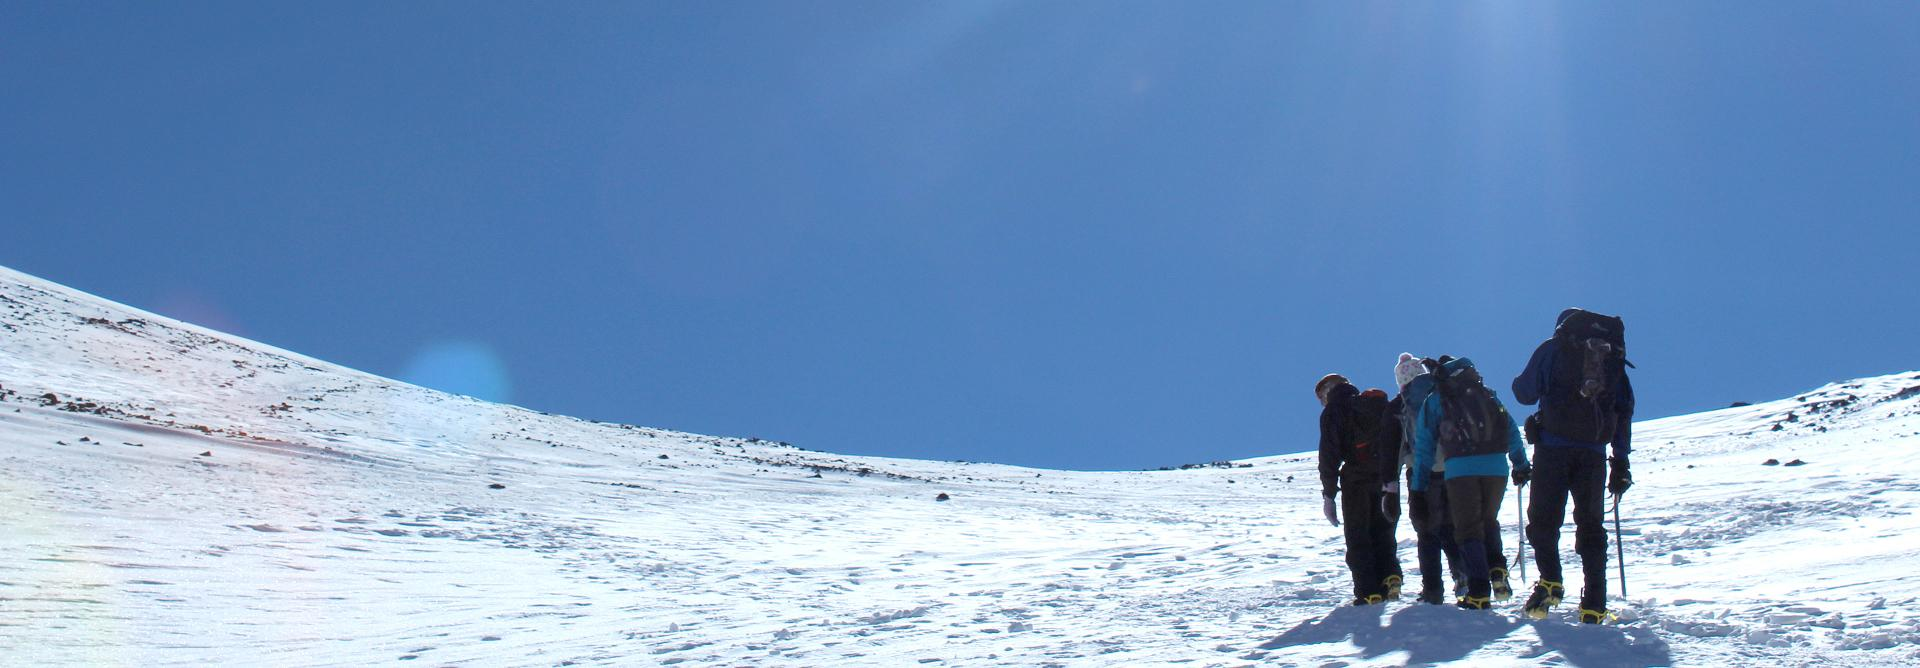 Winter Toubkal